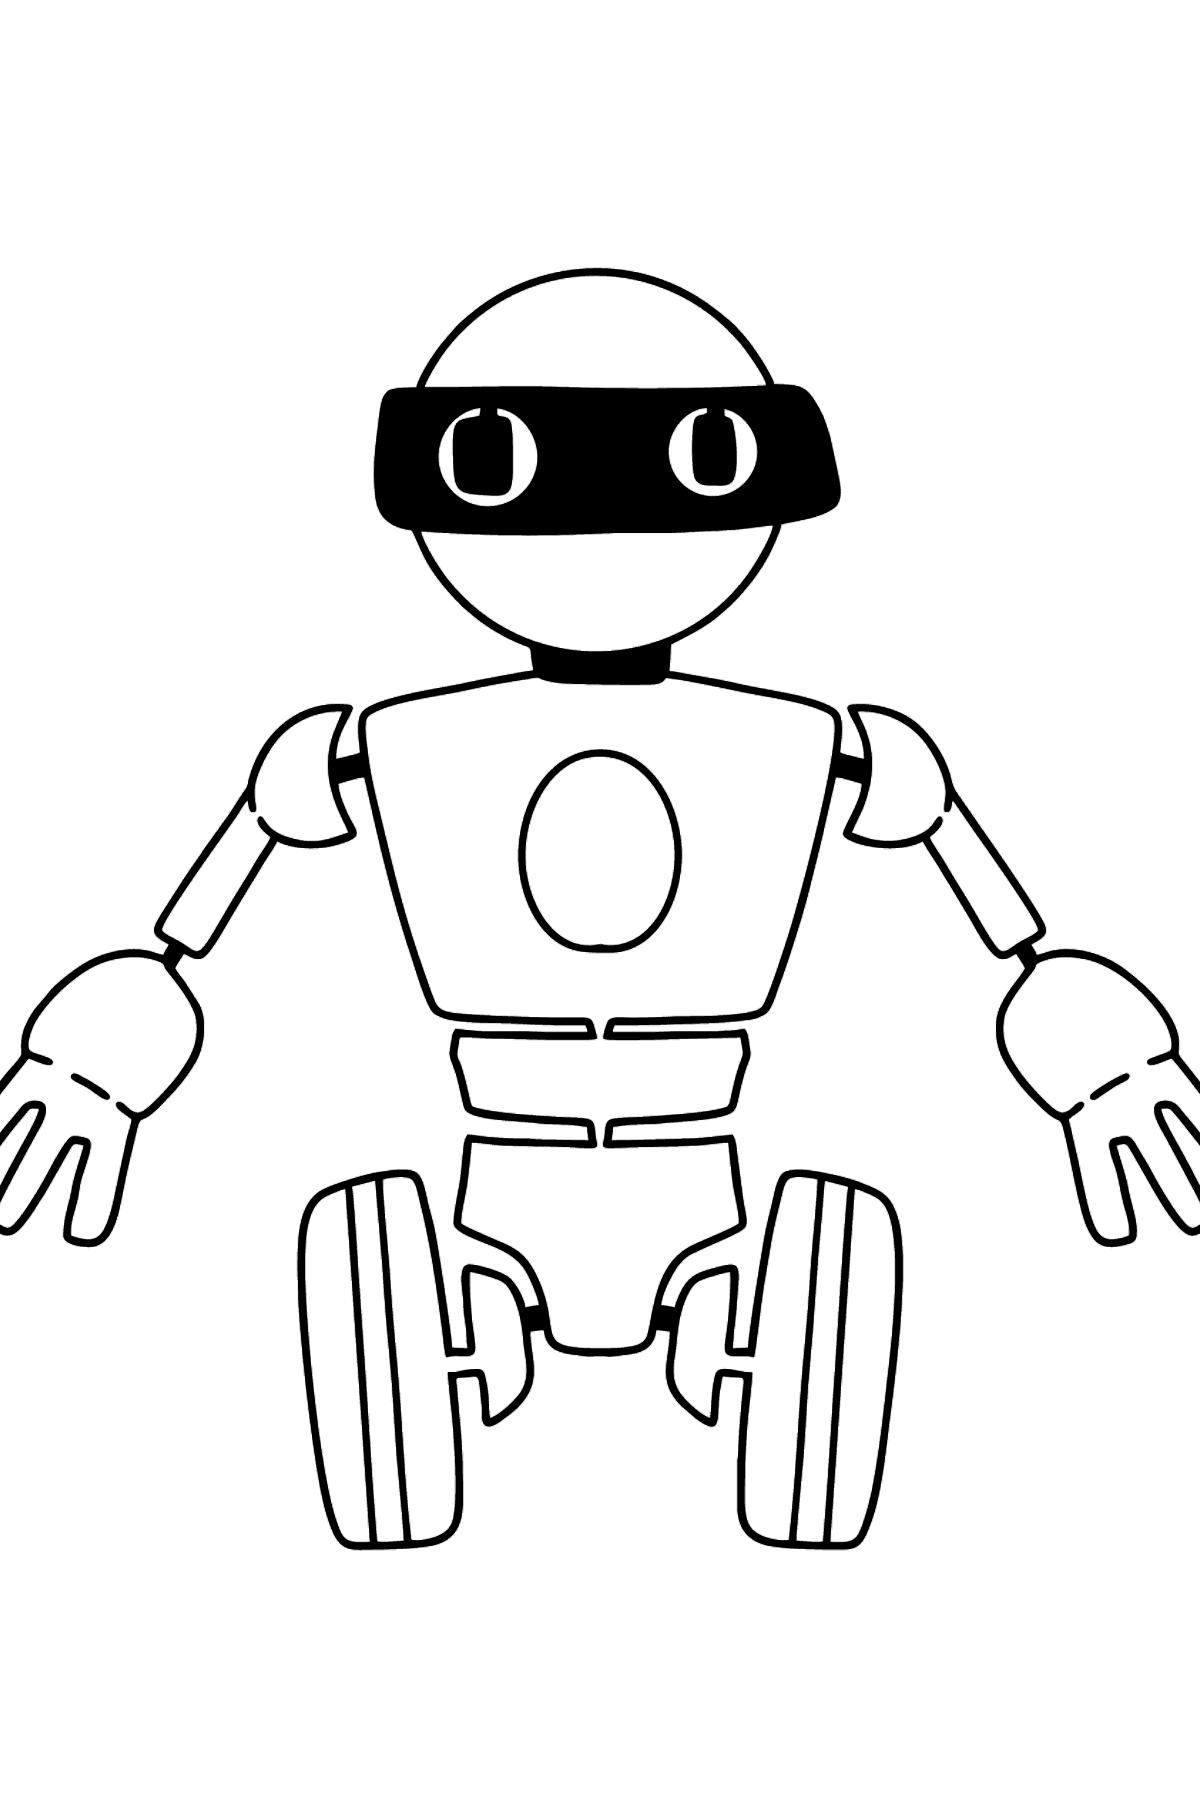 Cartoon Robot coloring page - Coloring Pages for Kids